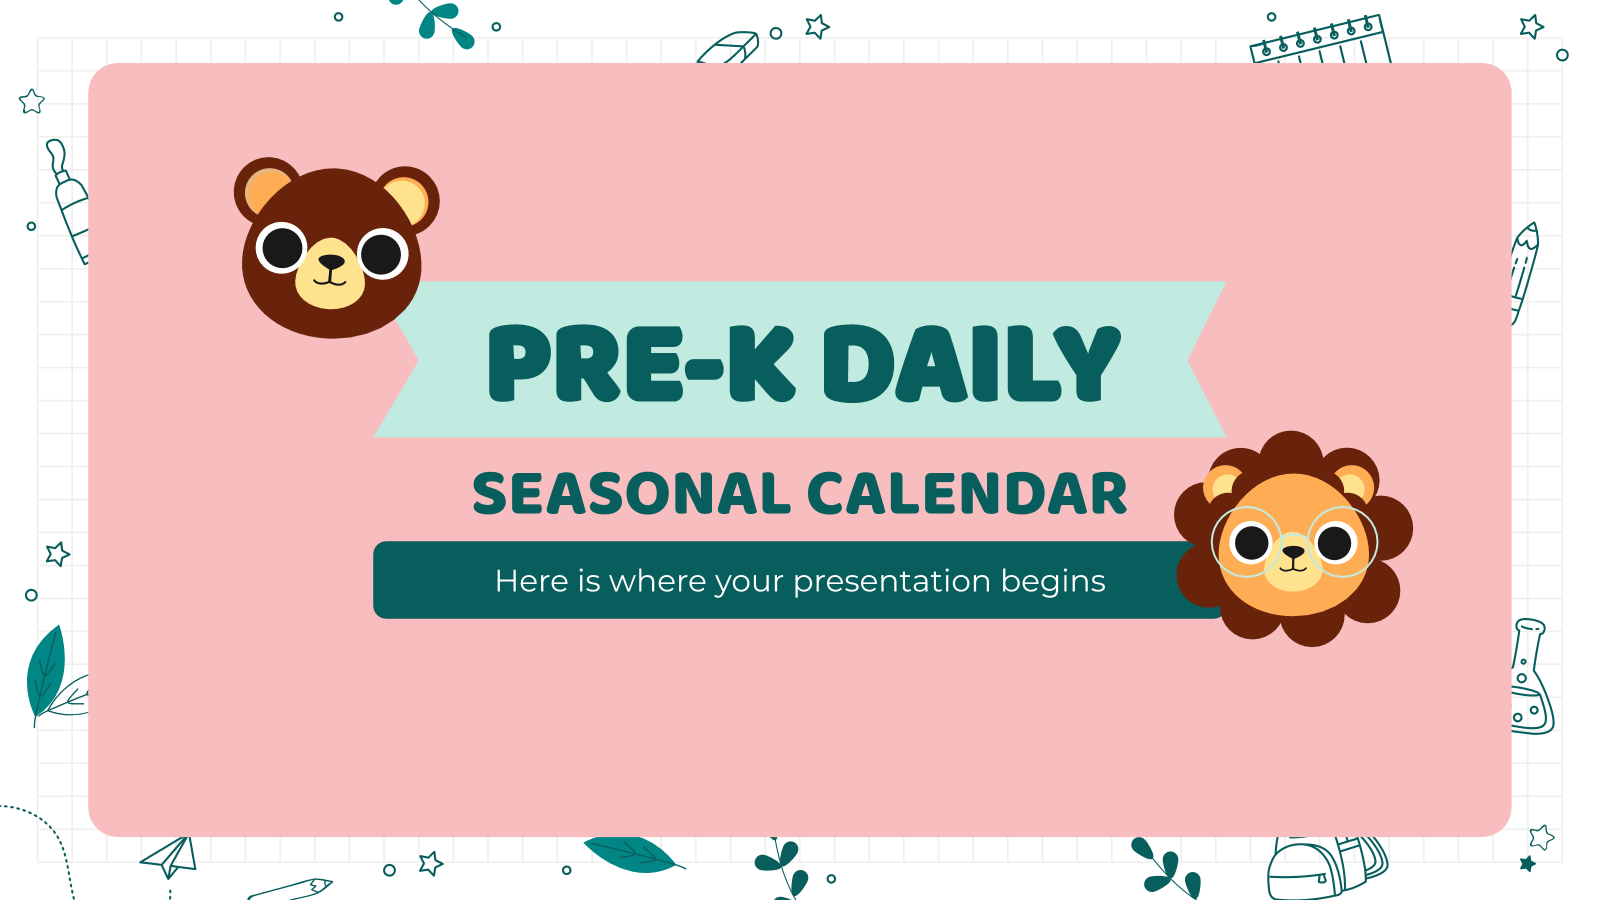 Pre-K Daily Seasonal Calendar presentation template